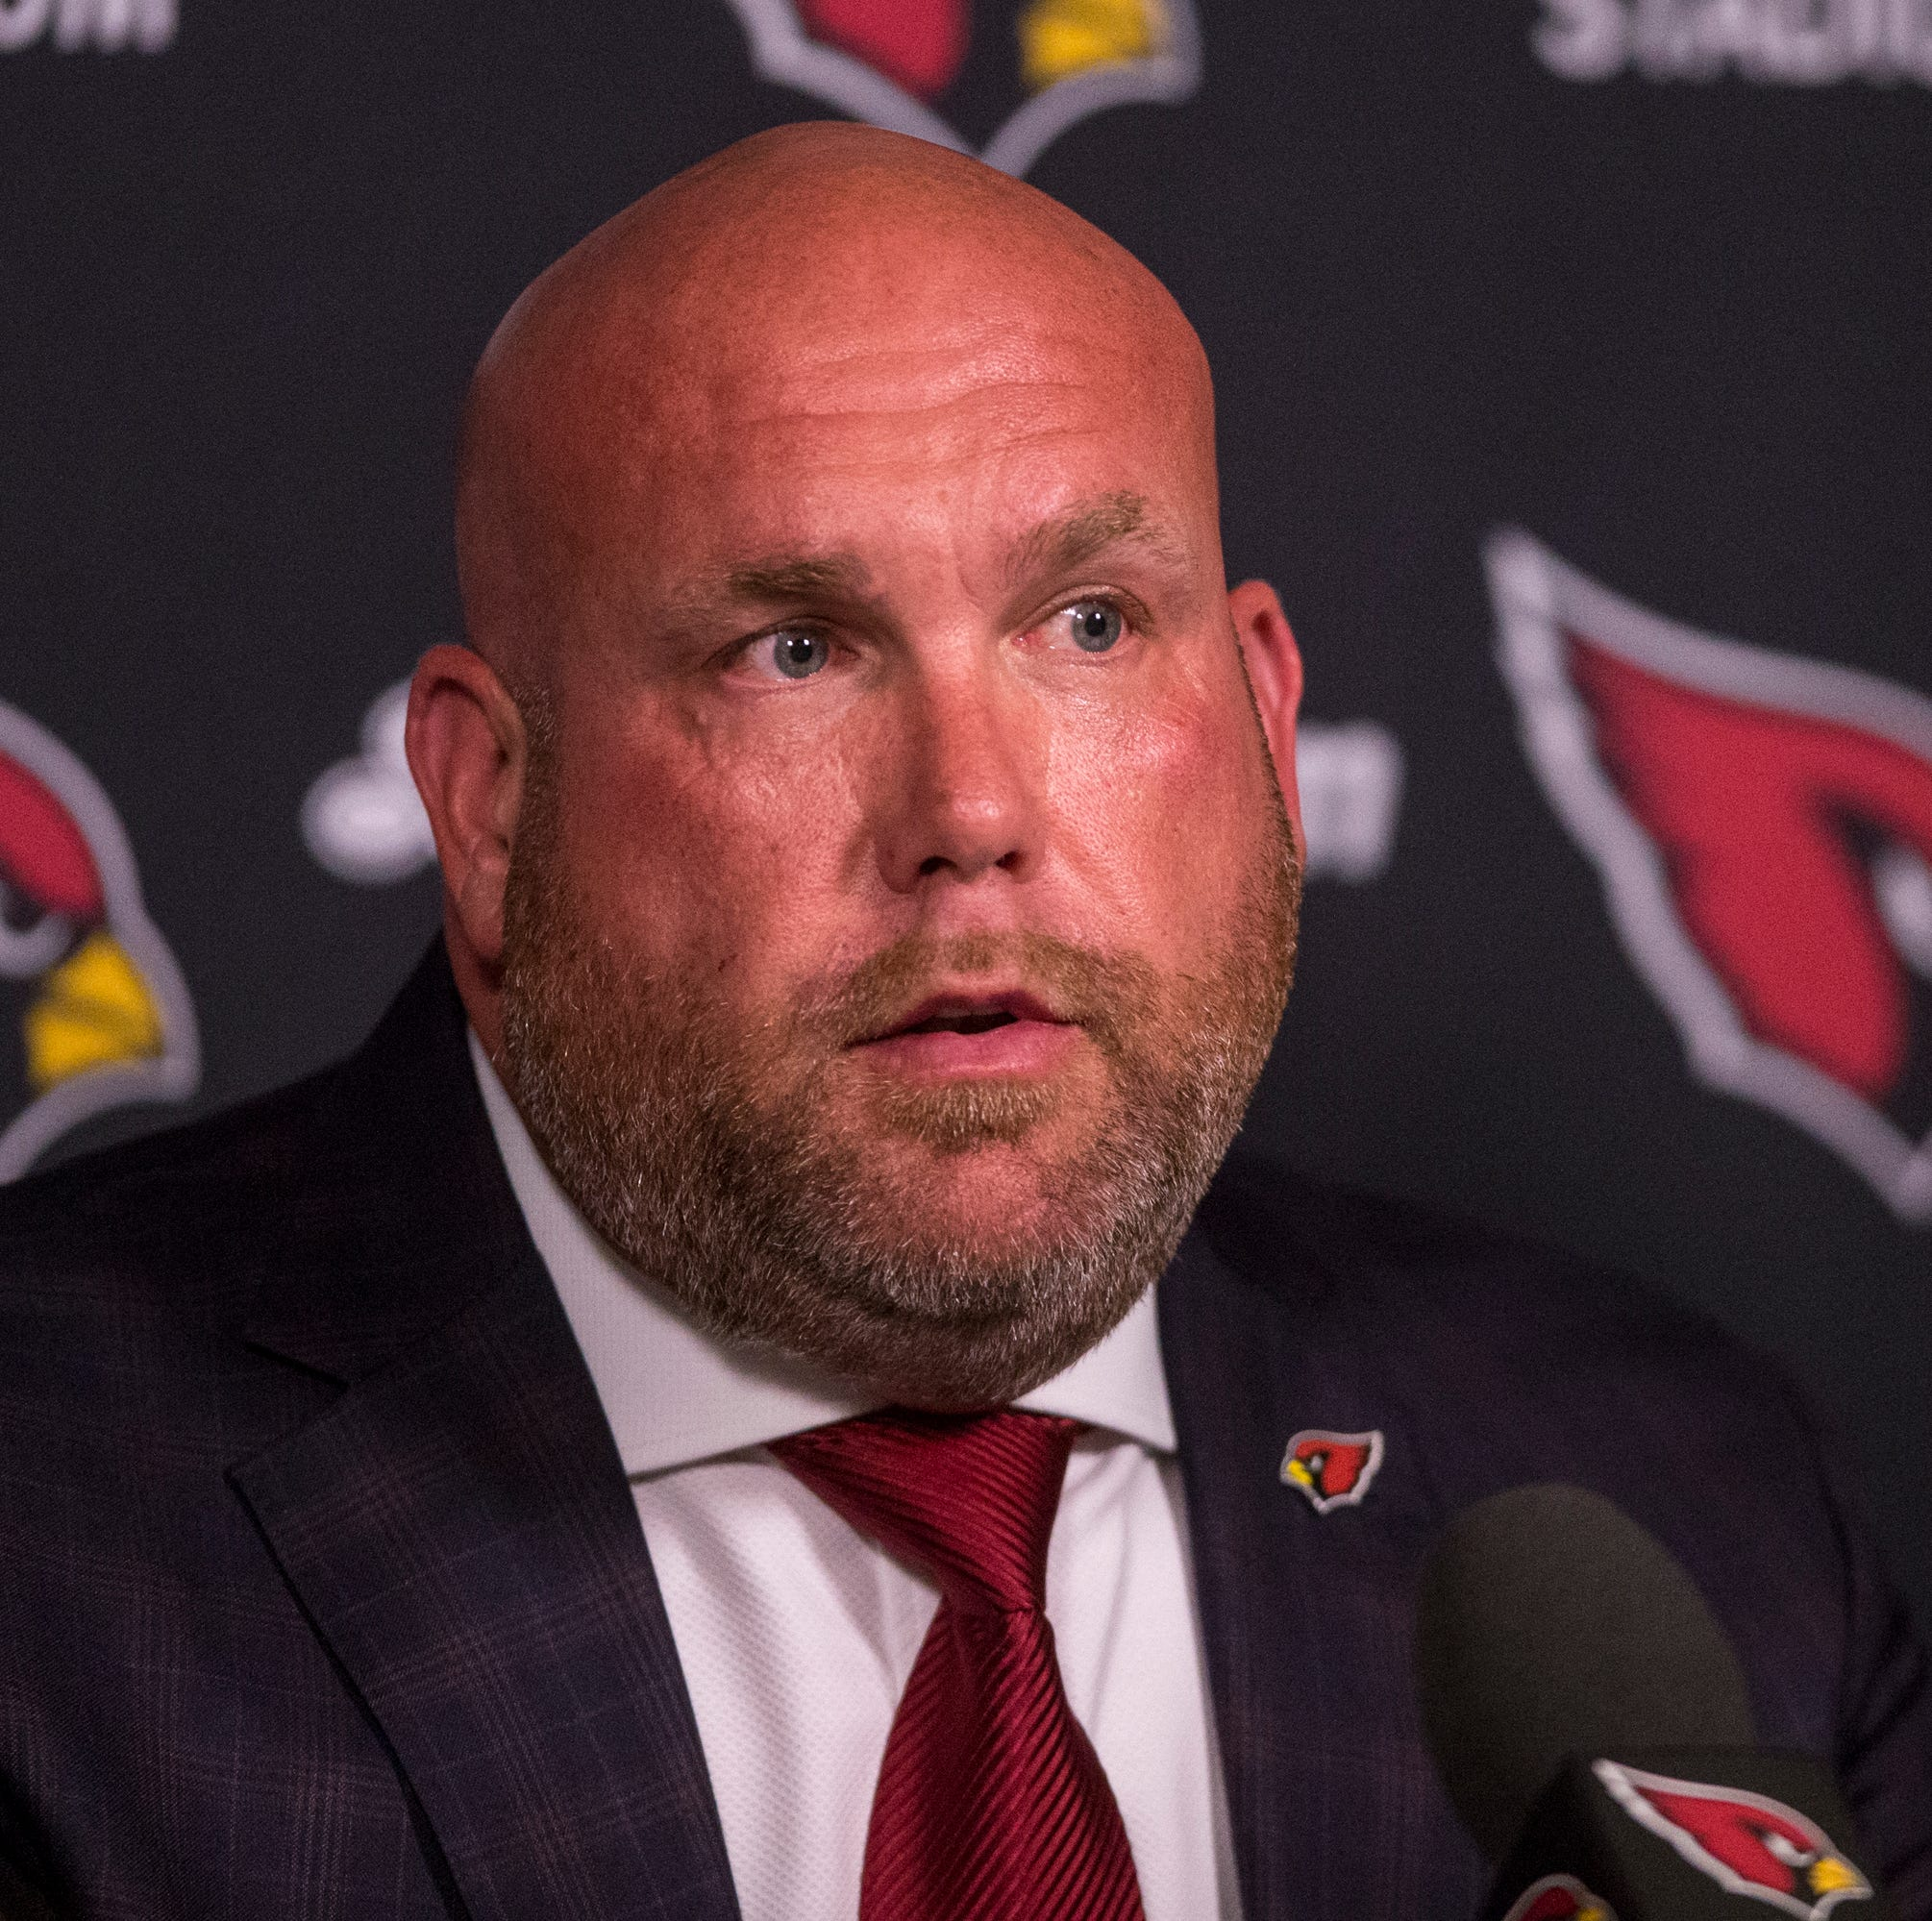 Arizona Cardinals General Manager Steve Keim's future is now tied to Kyler Murray